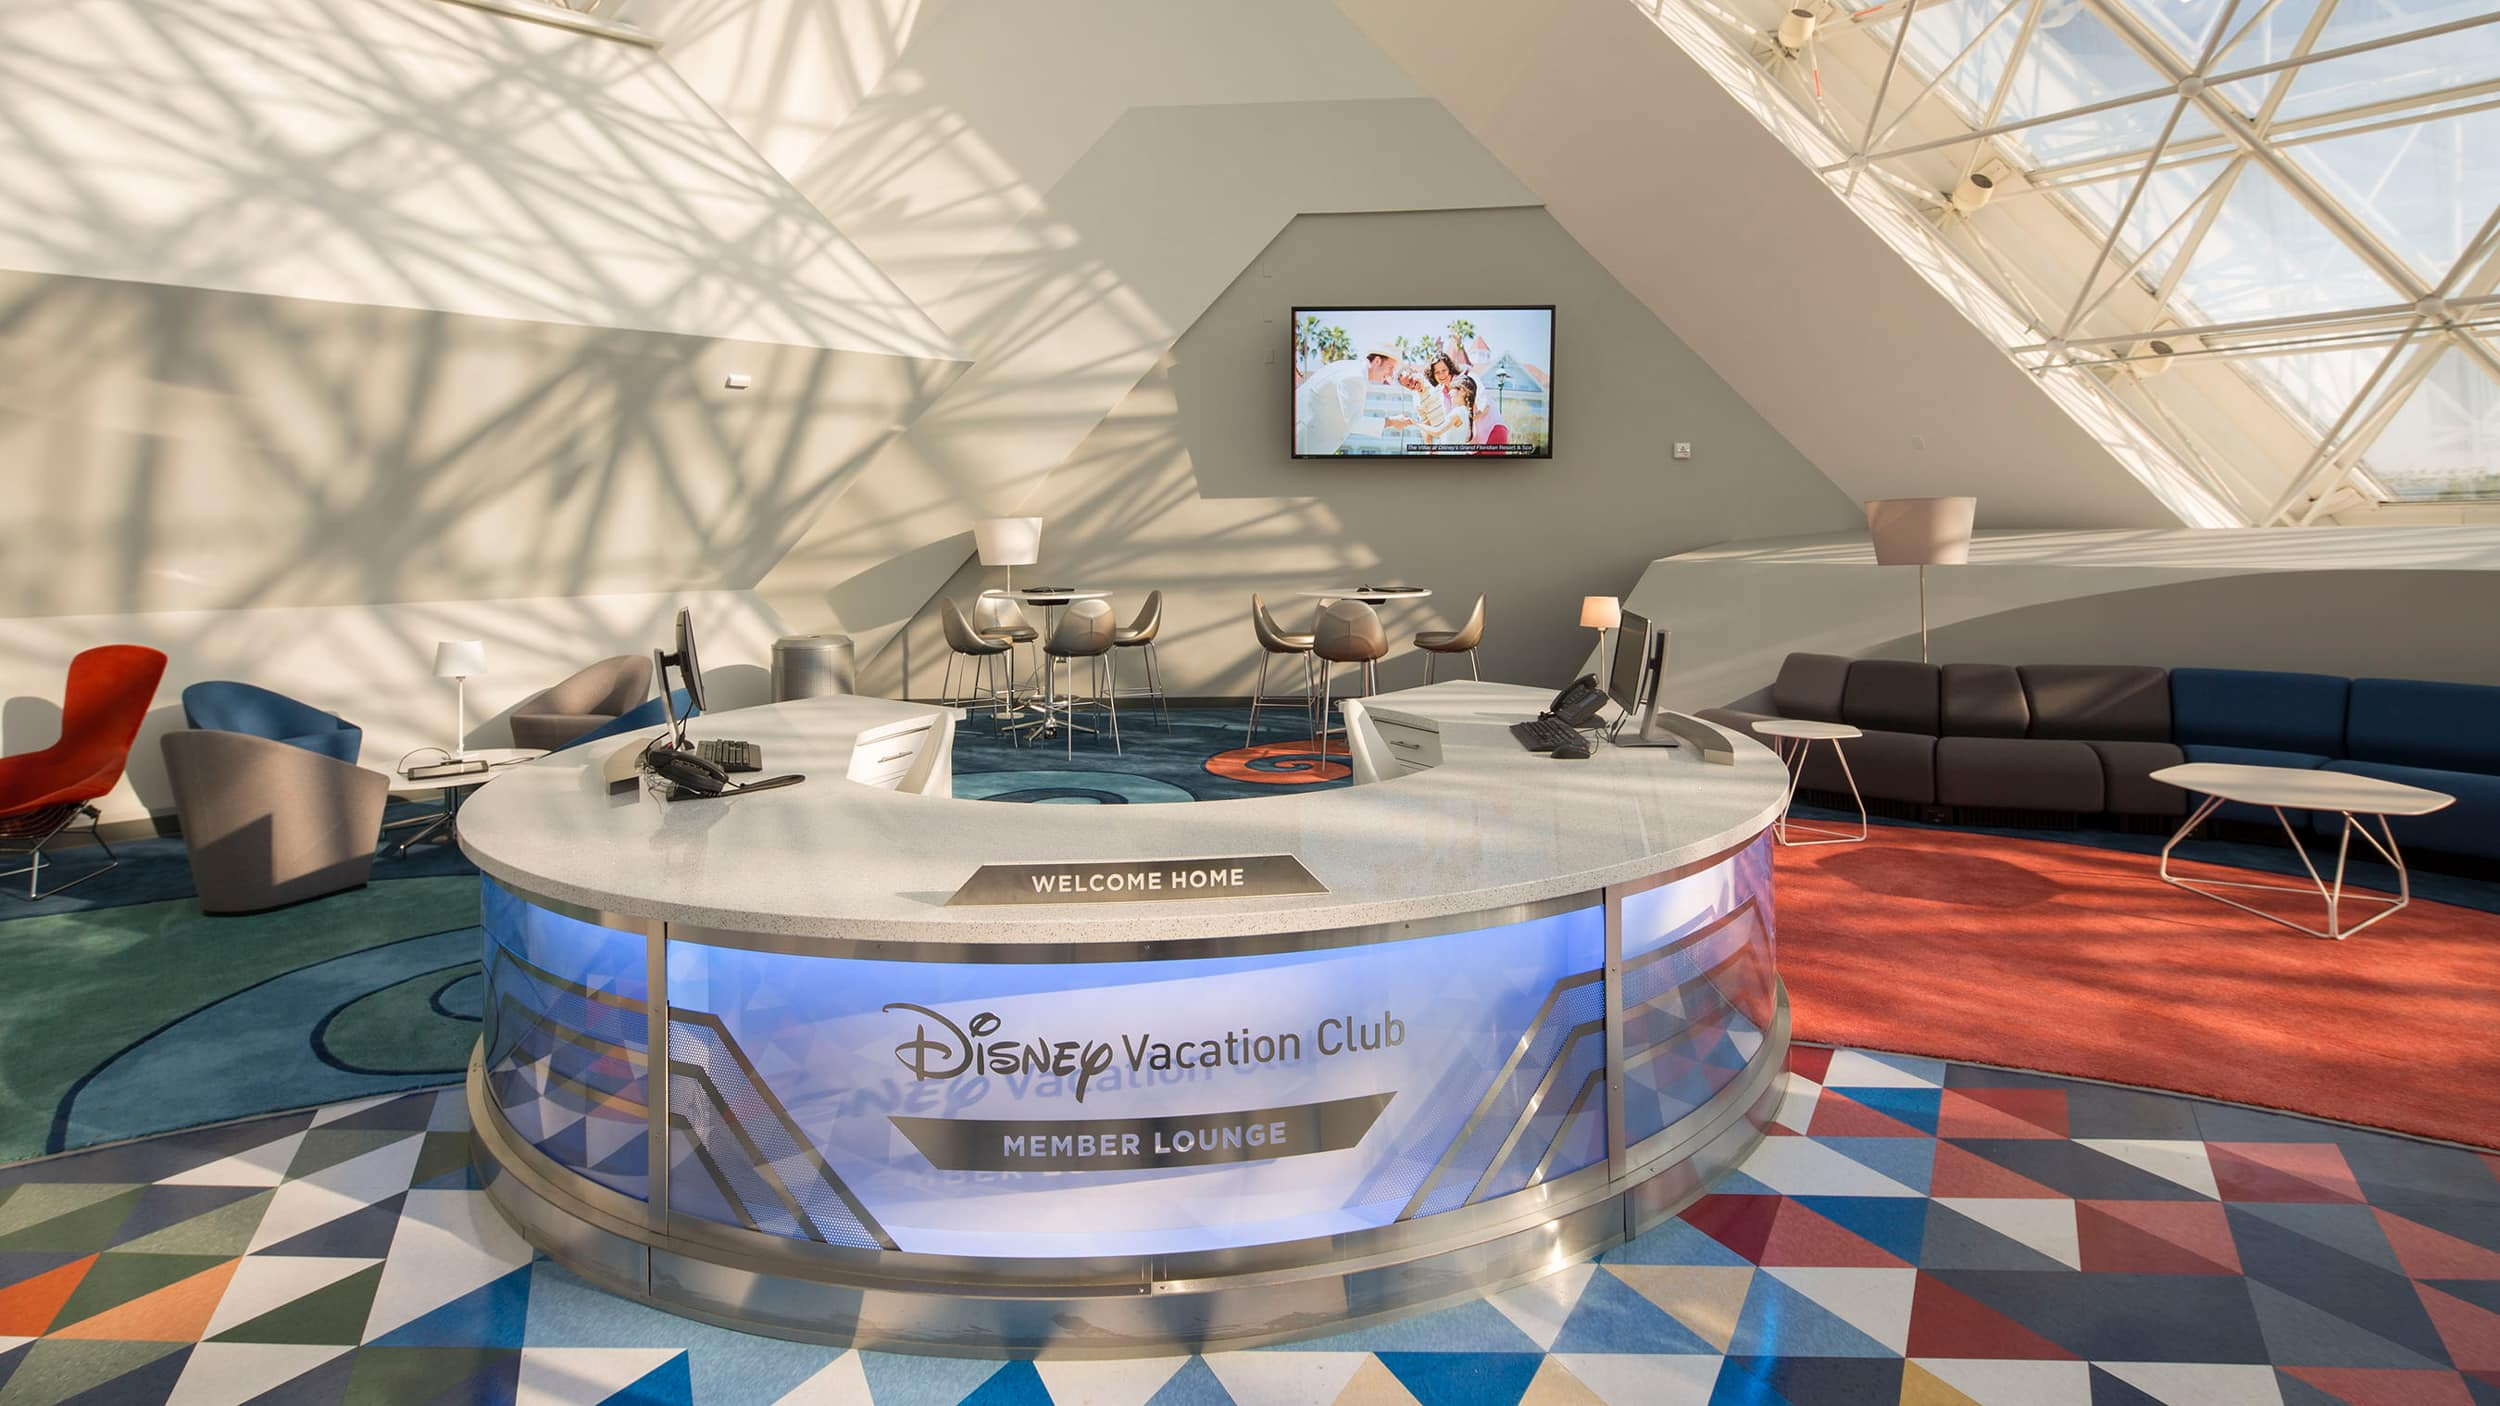 The interior of the Member Lounge at Epcot